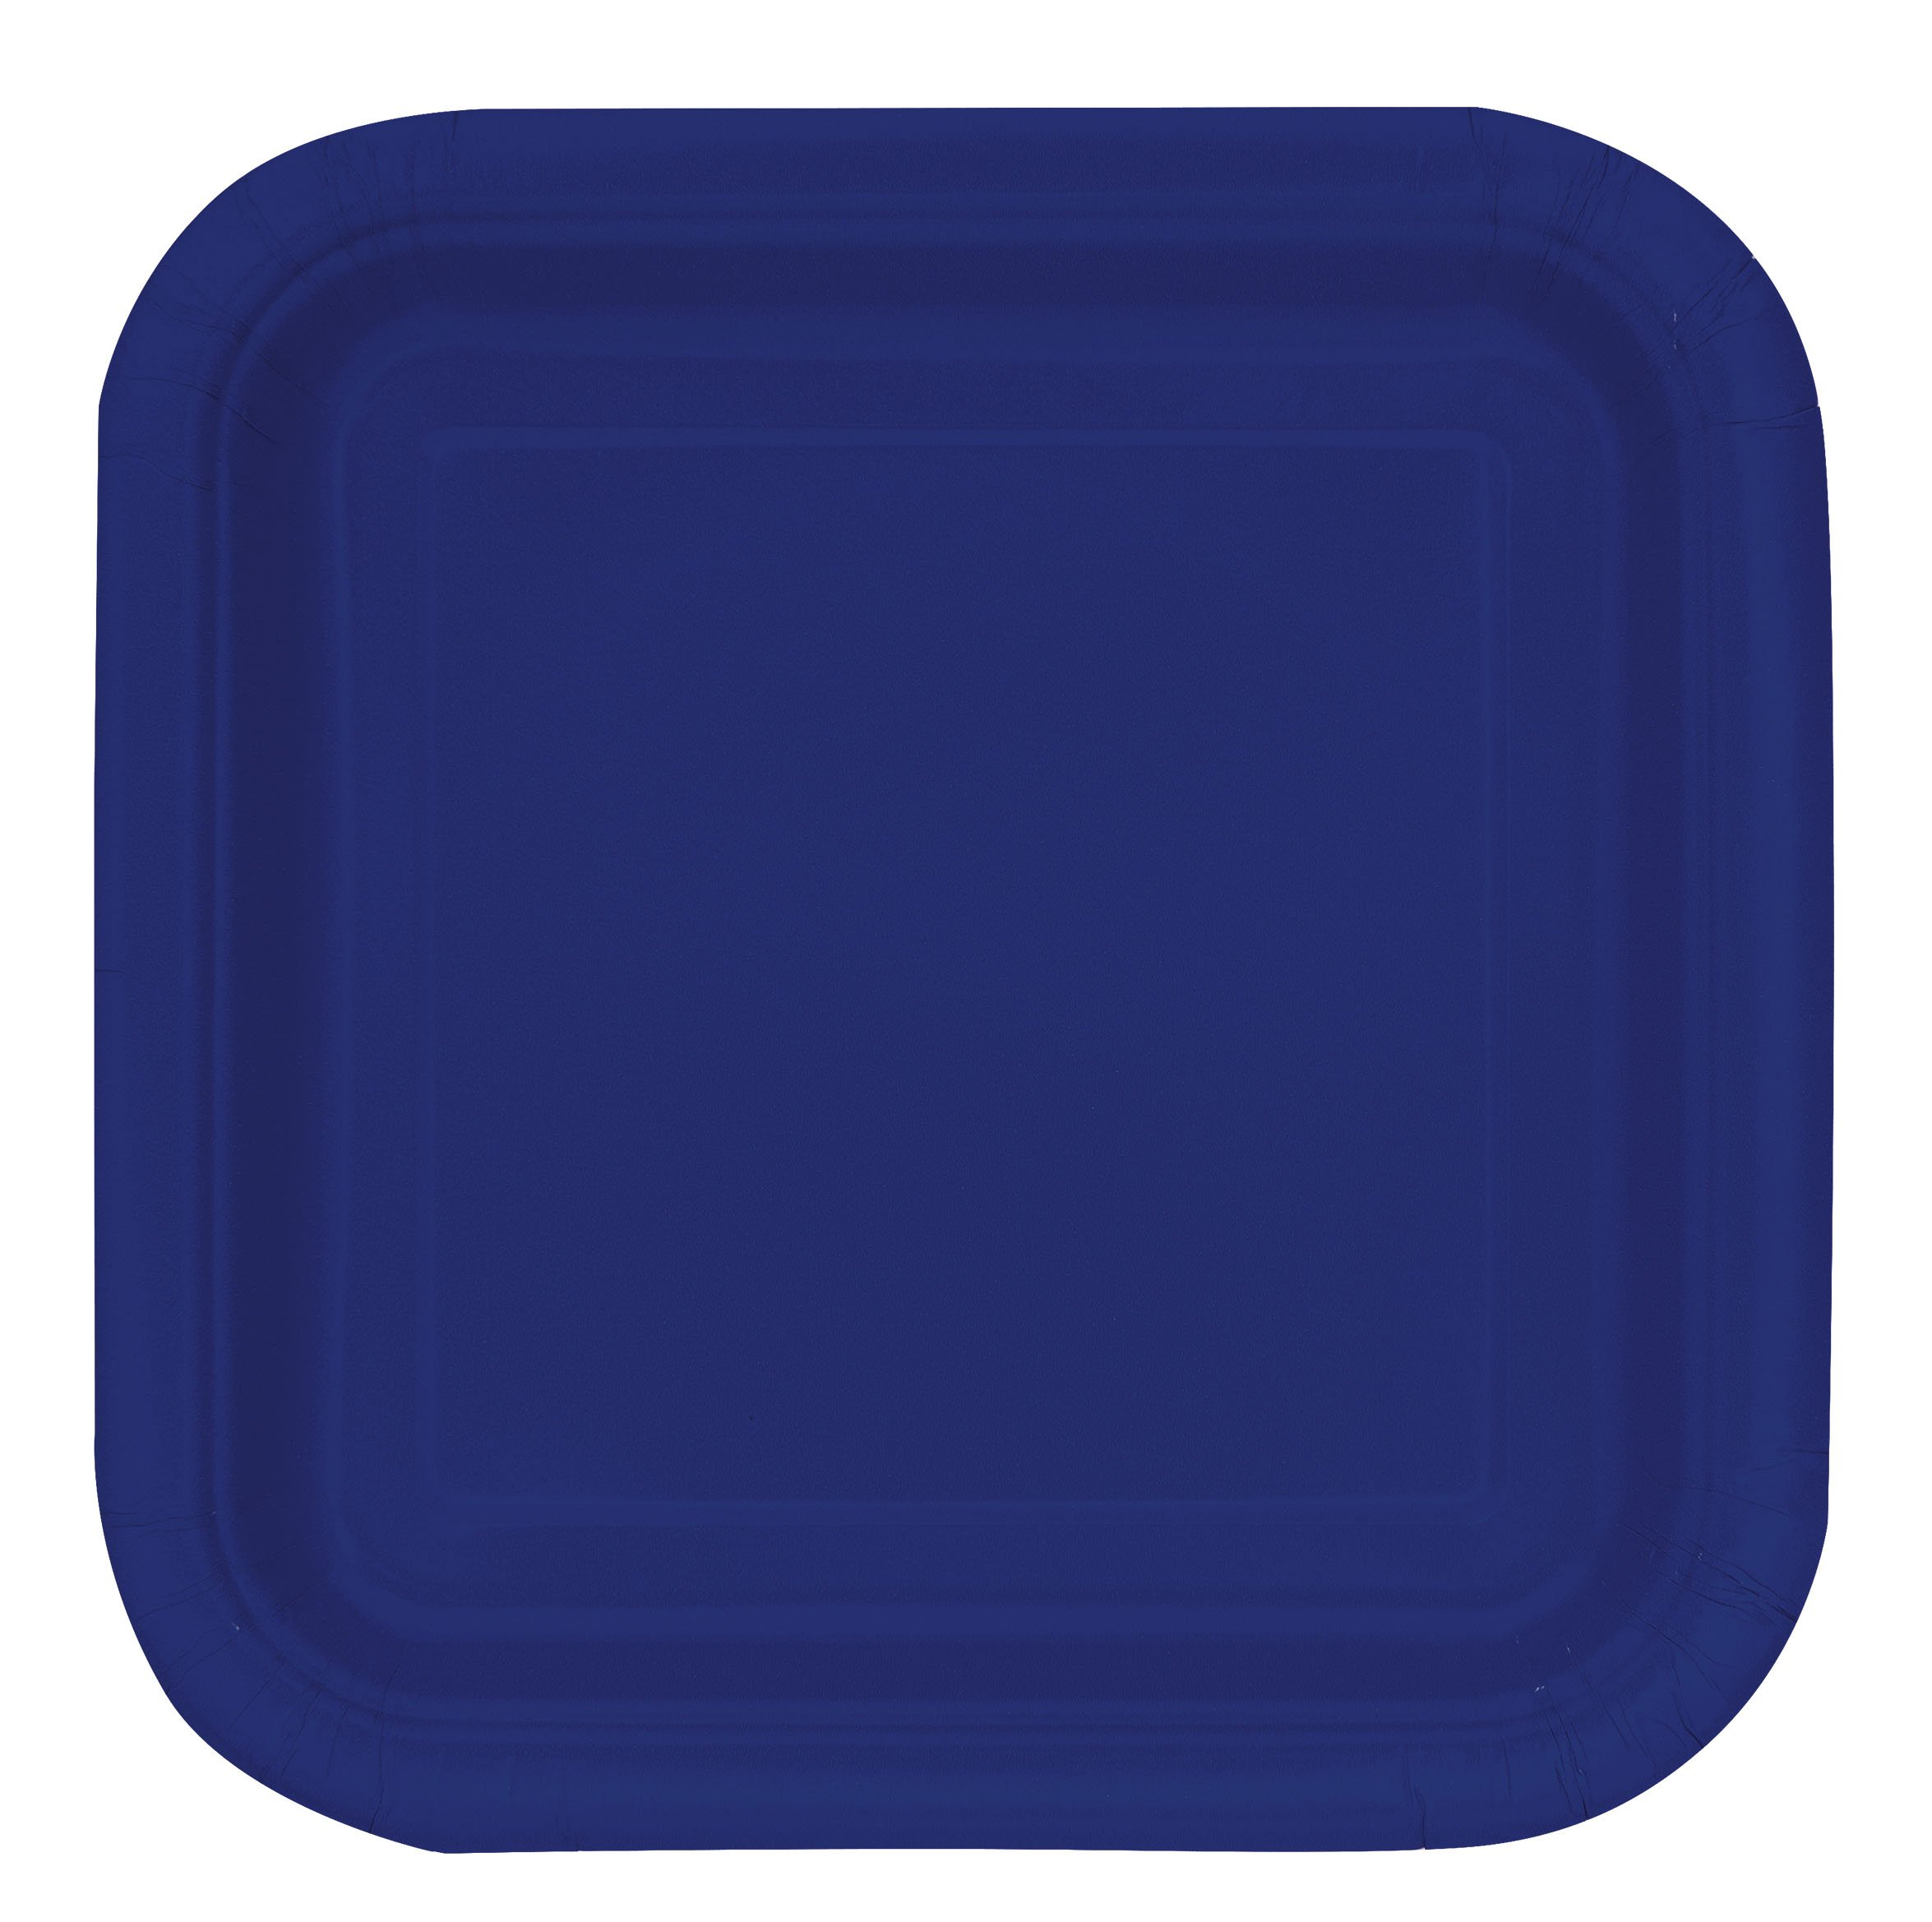 Square Navy Blue Paper Cake Plates, 16ct